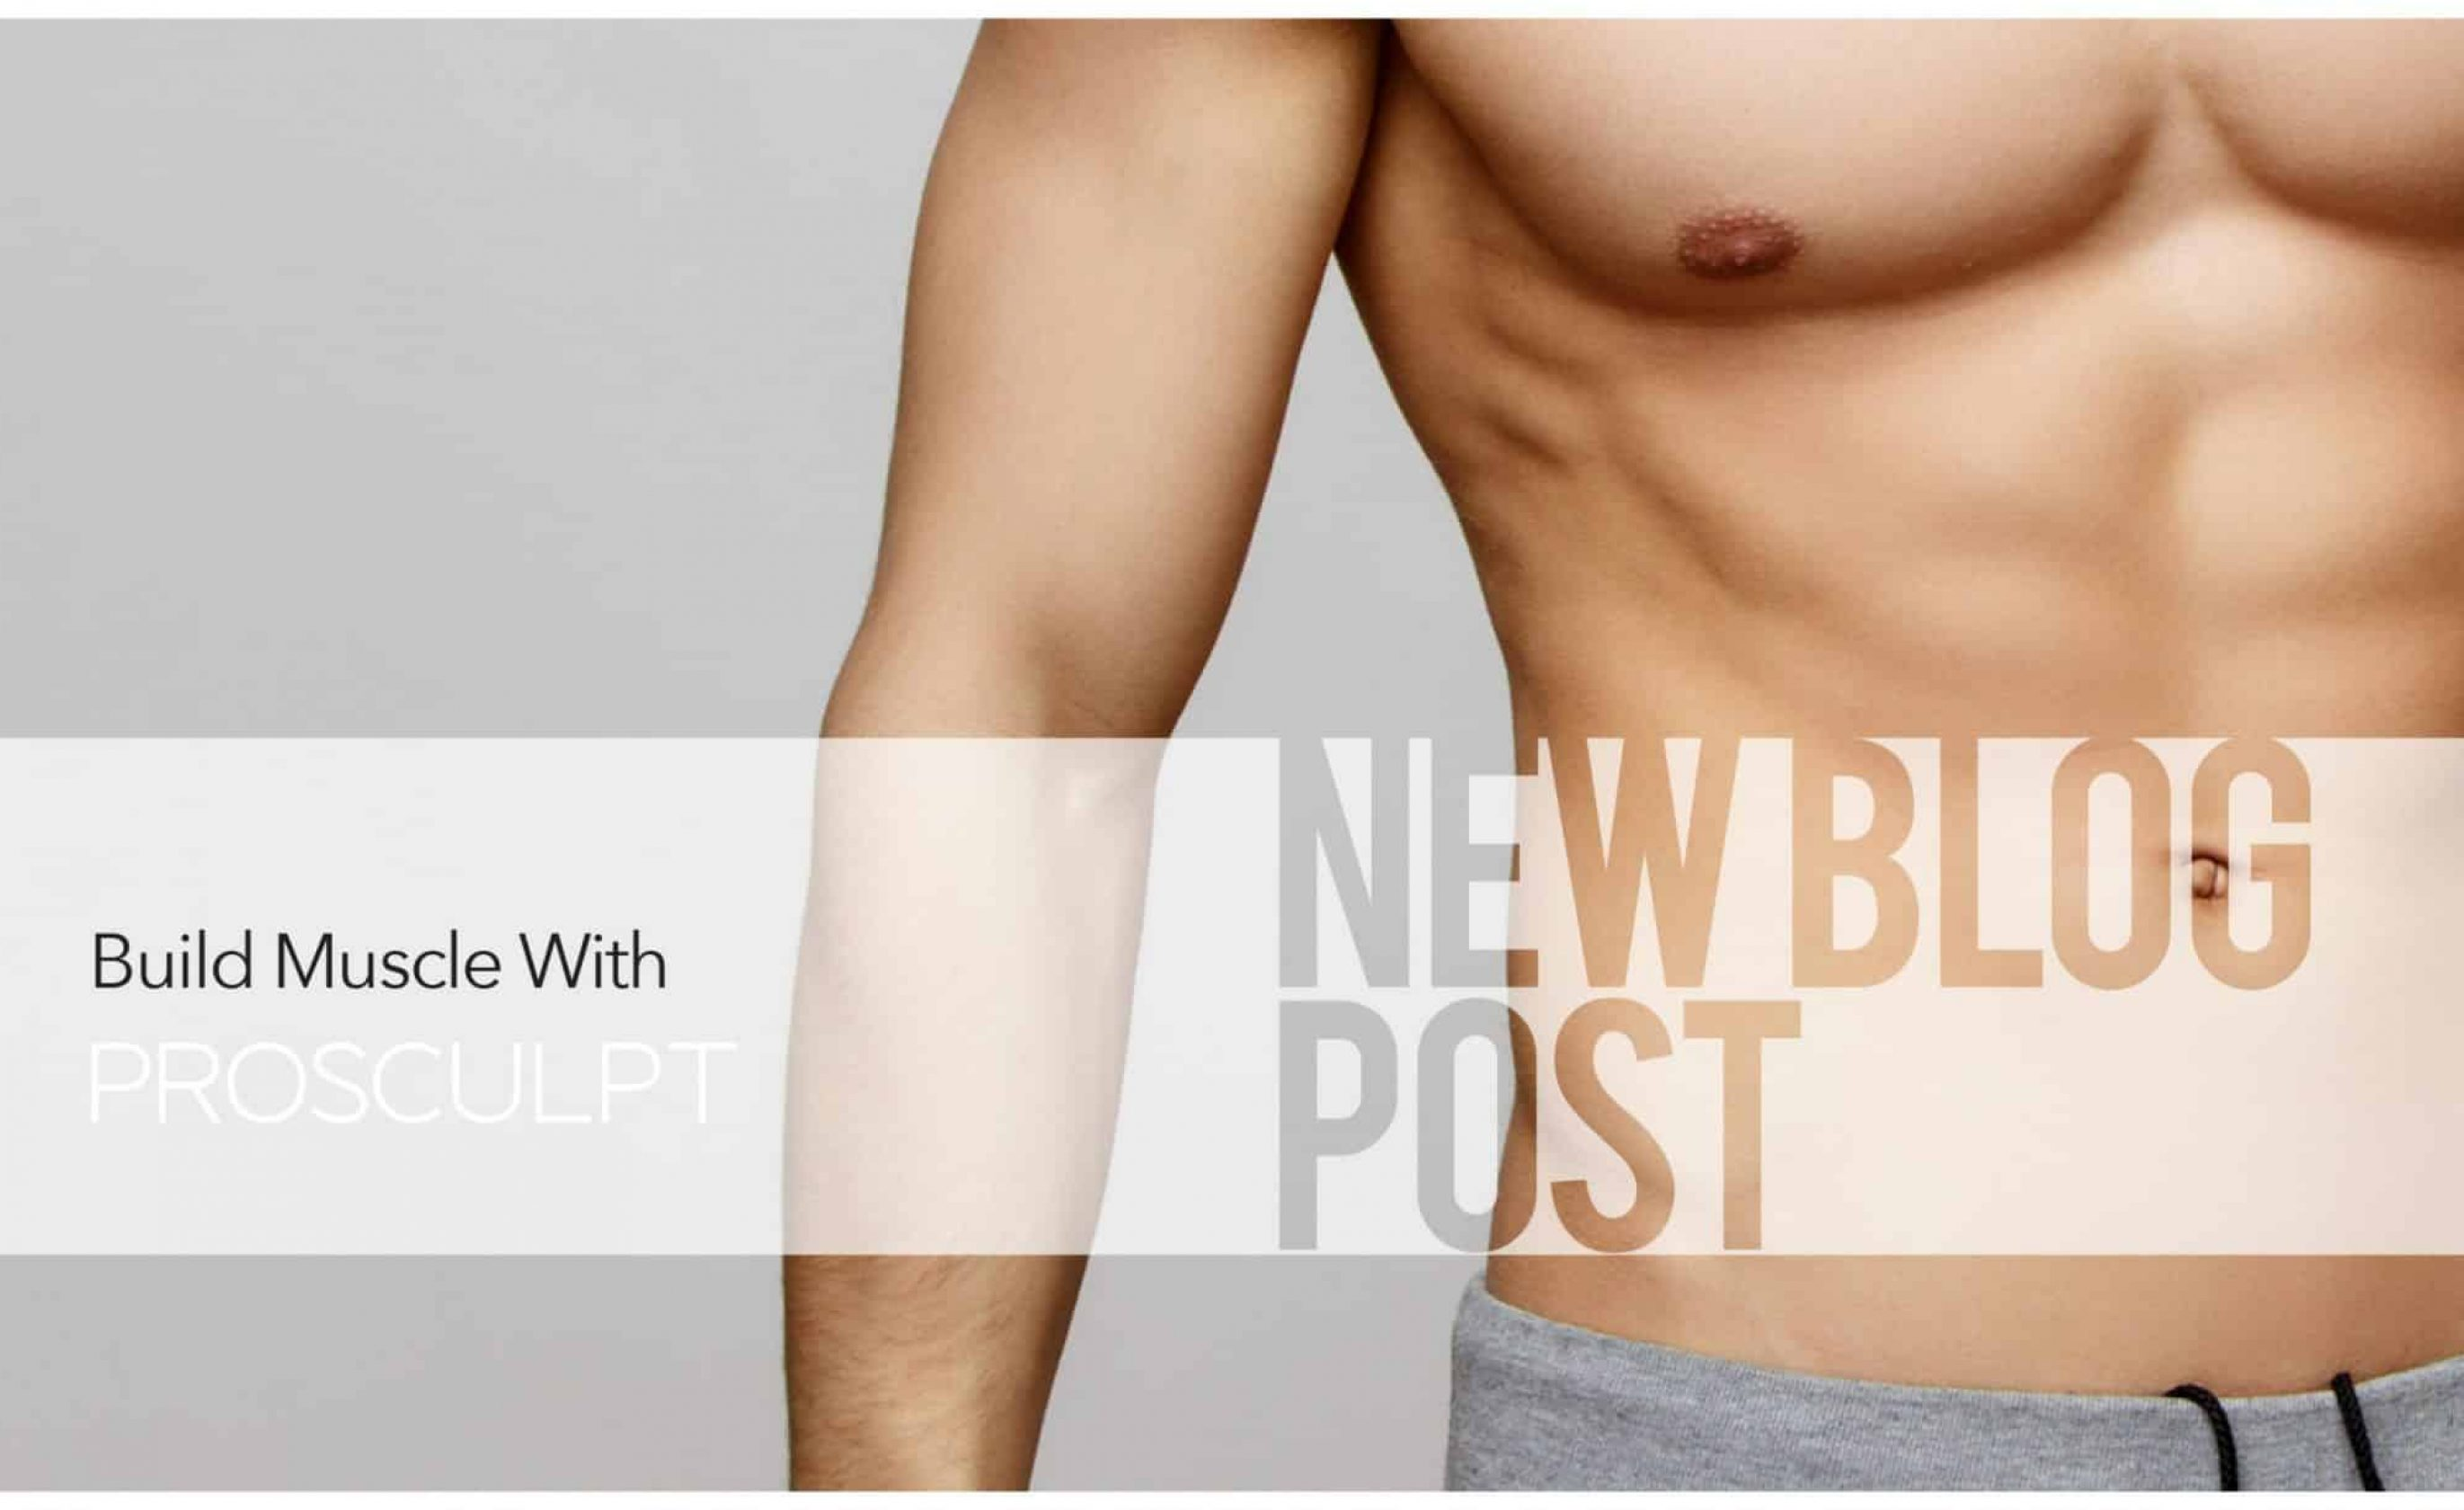 Build Muscle with ProSculpt